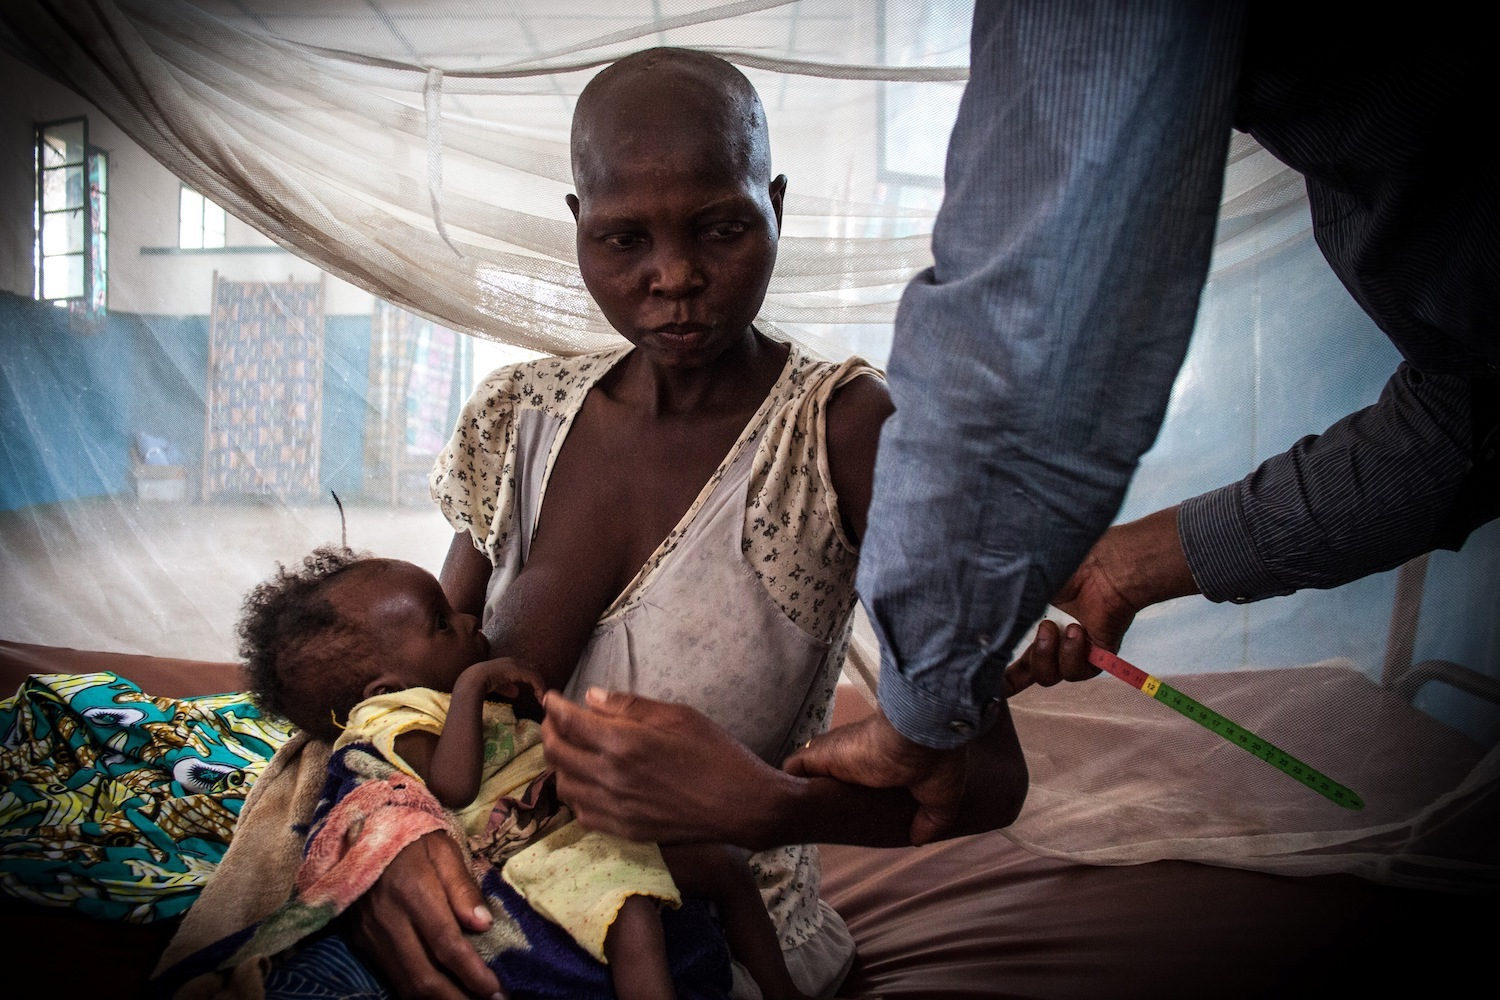 On the side of malnourished children in Mali